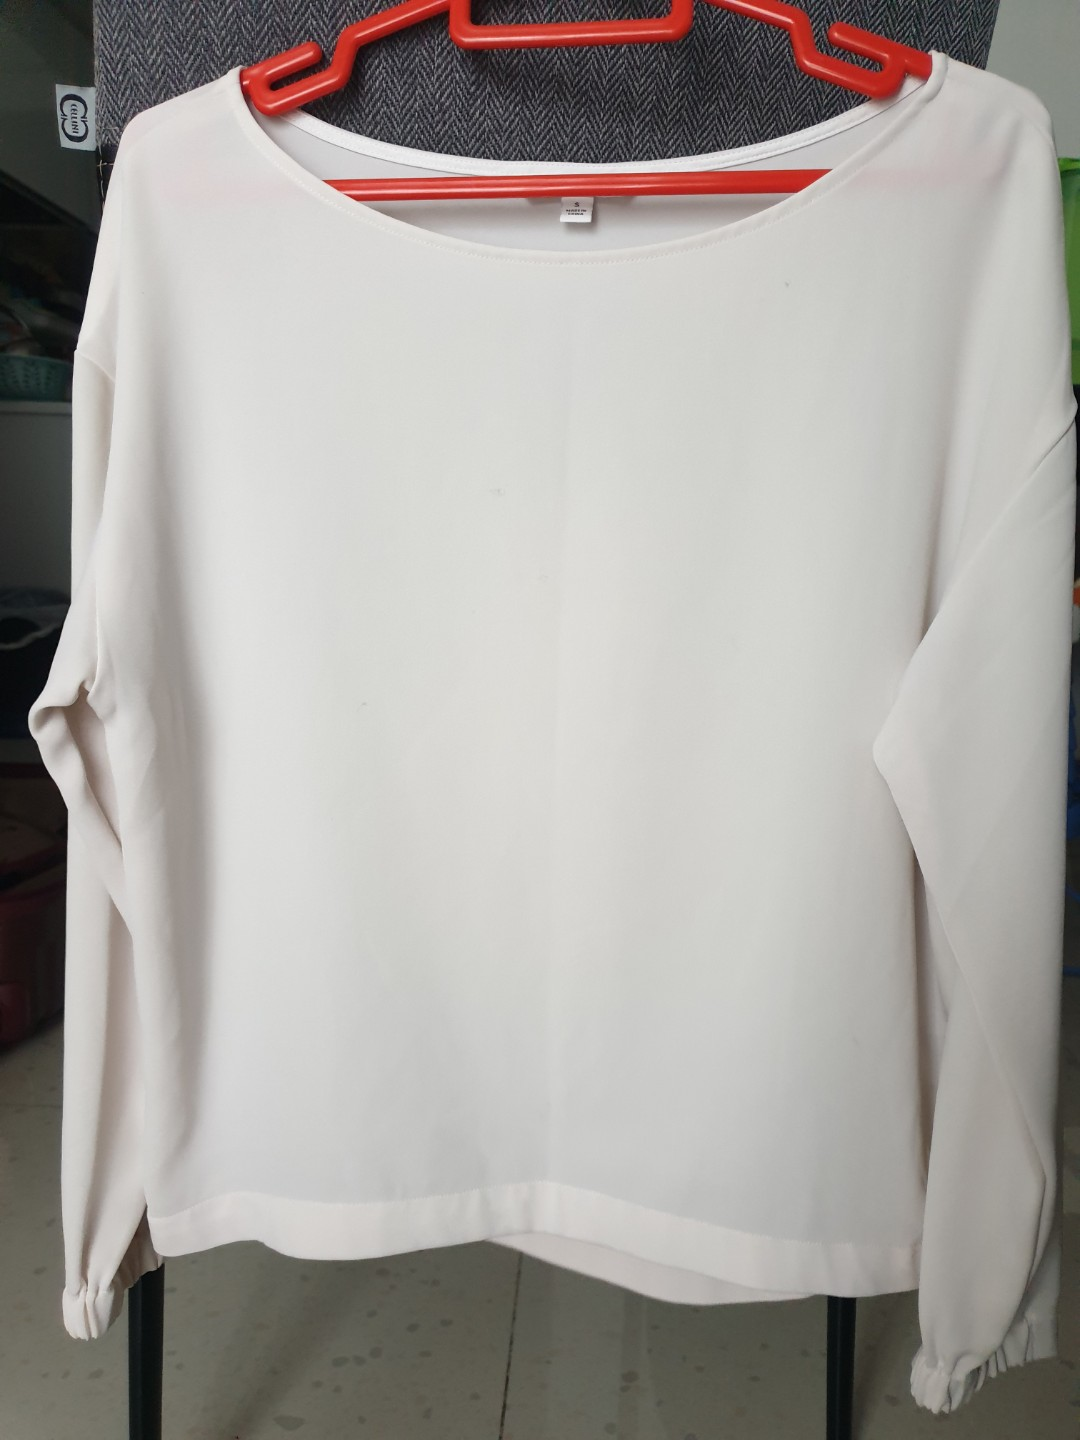 Womens Shirts And Blouses Under $10 - DREAMWORKS